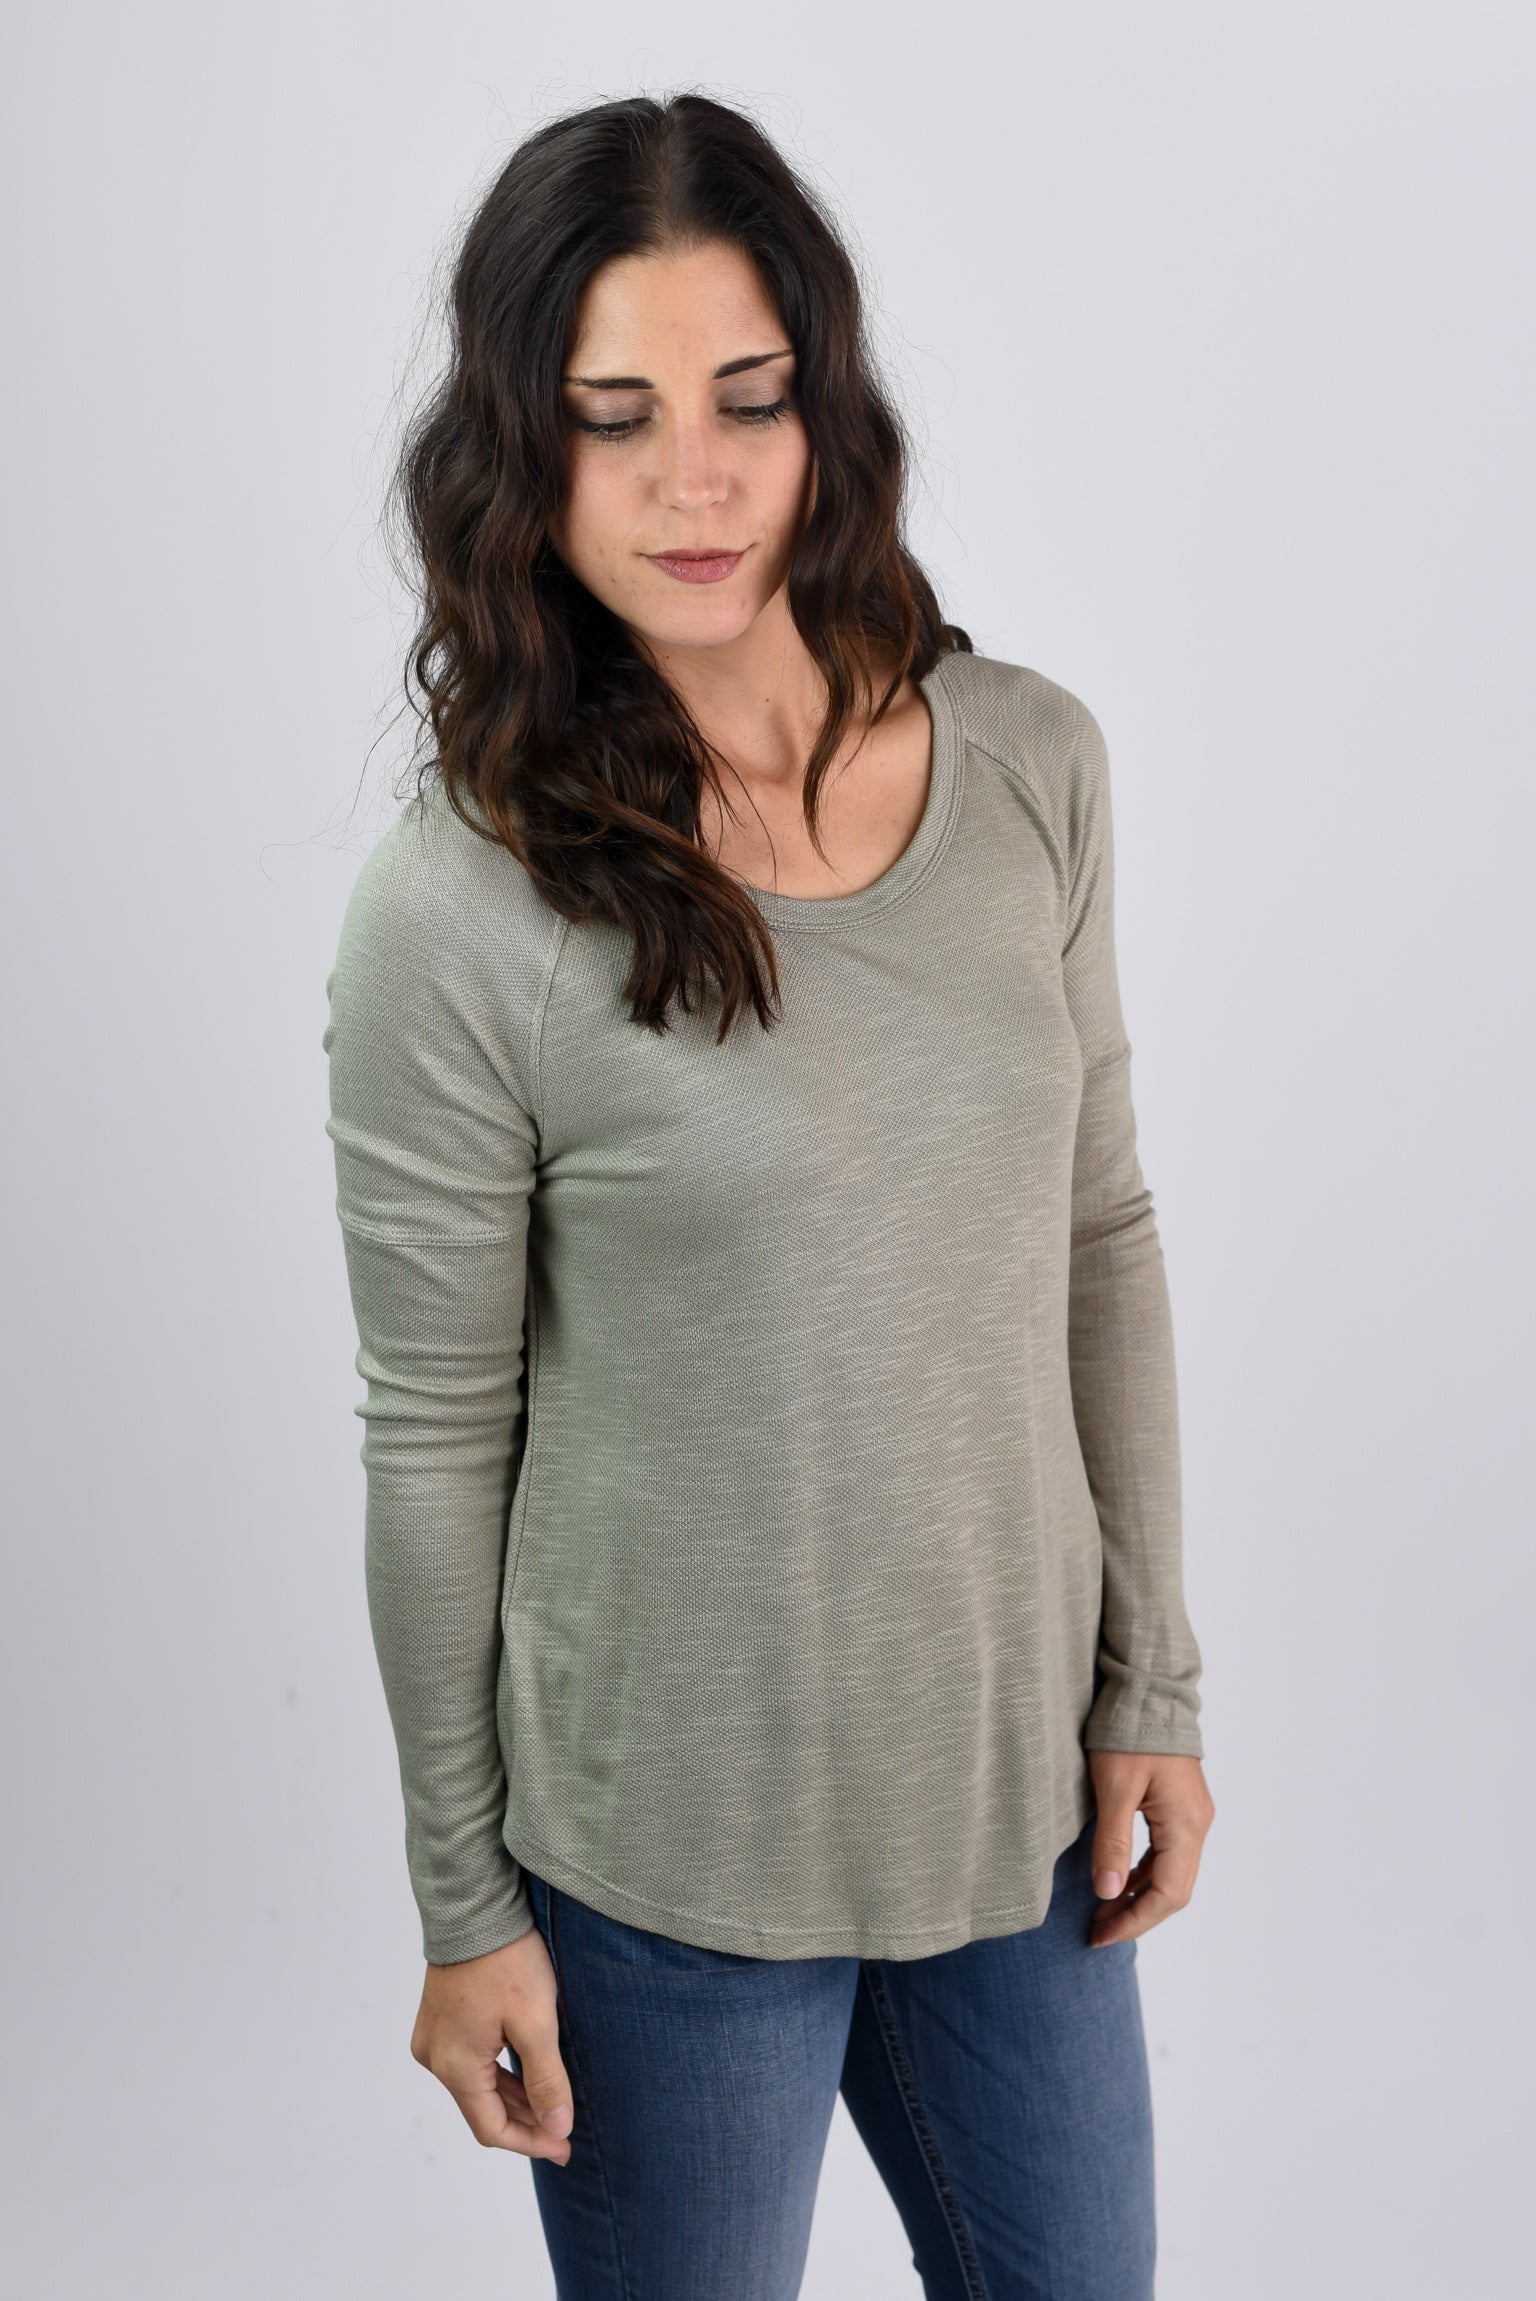 Nothing Compares Olive Slub Long Sleeve Top